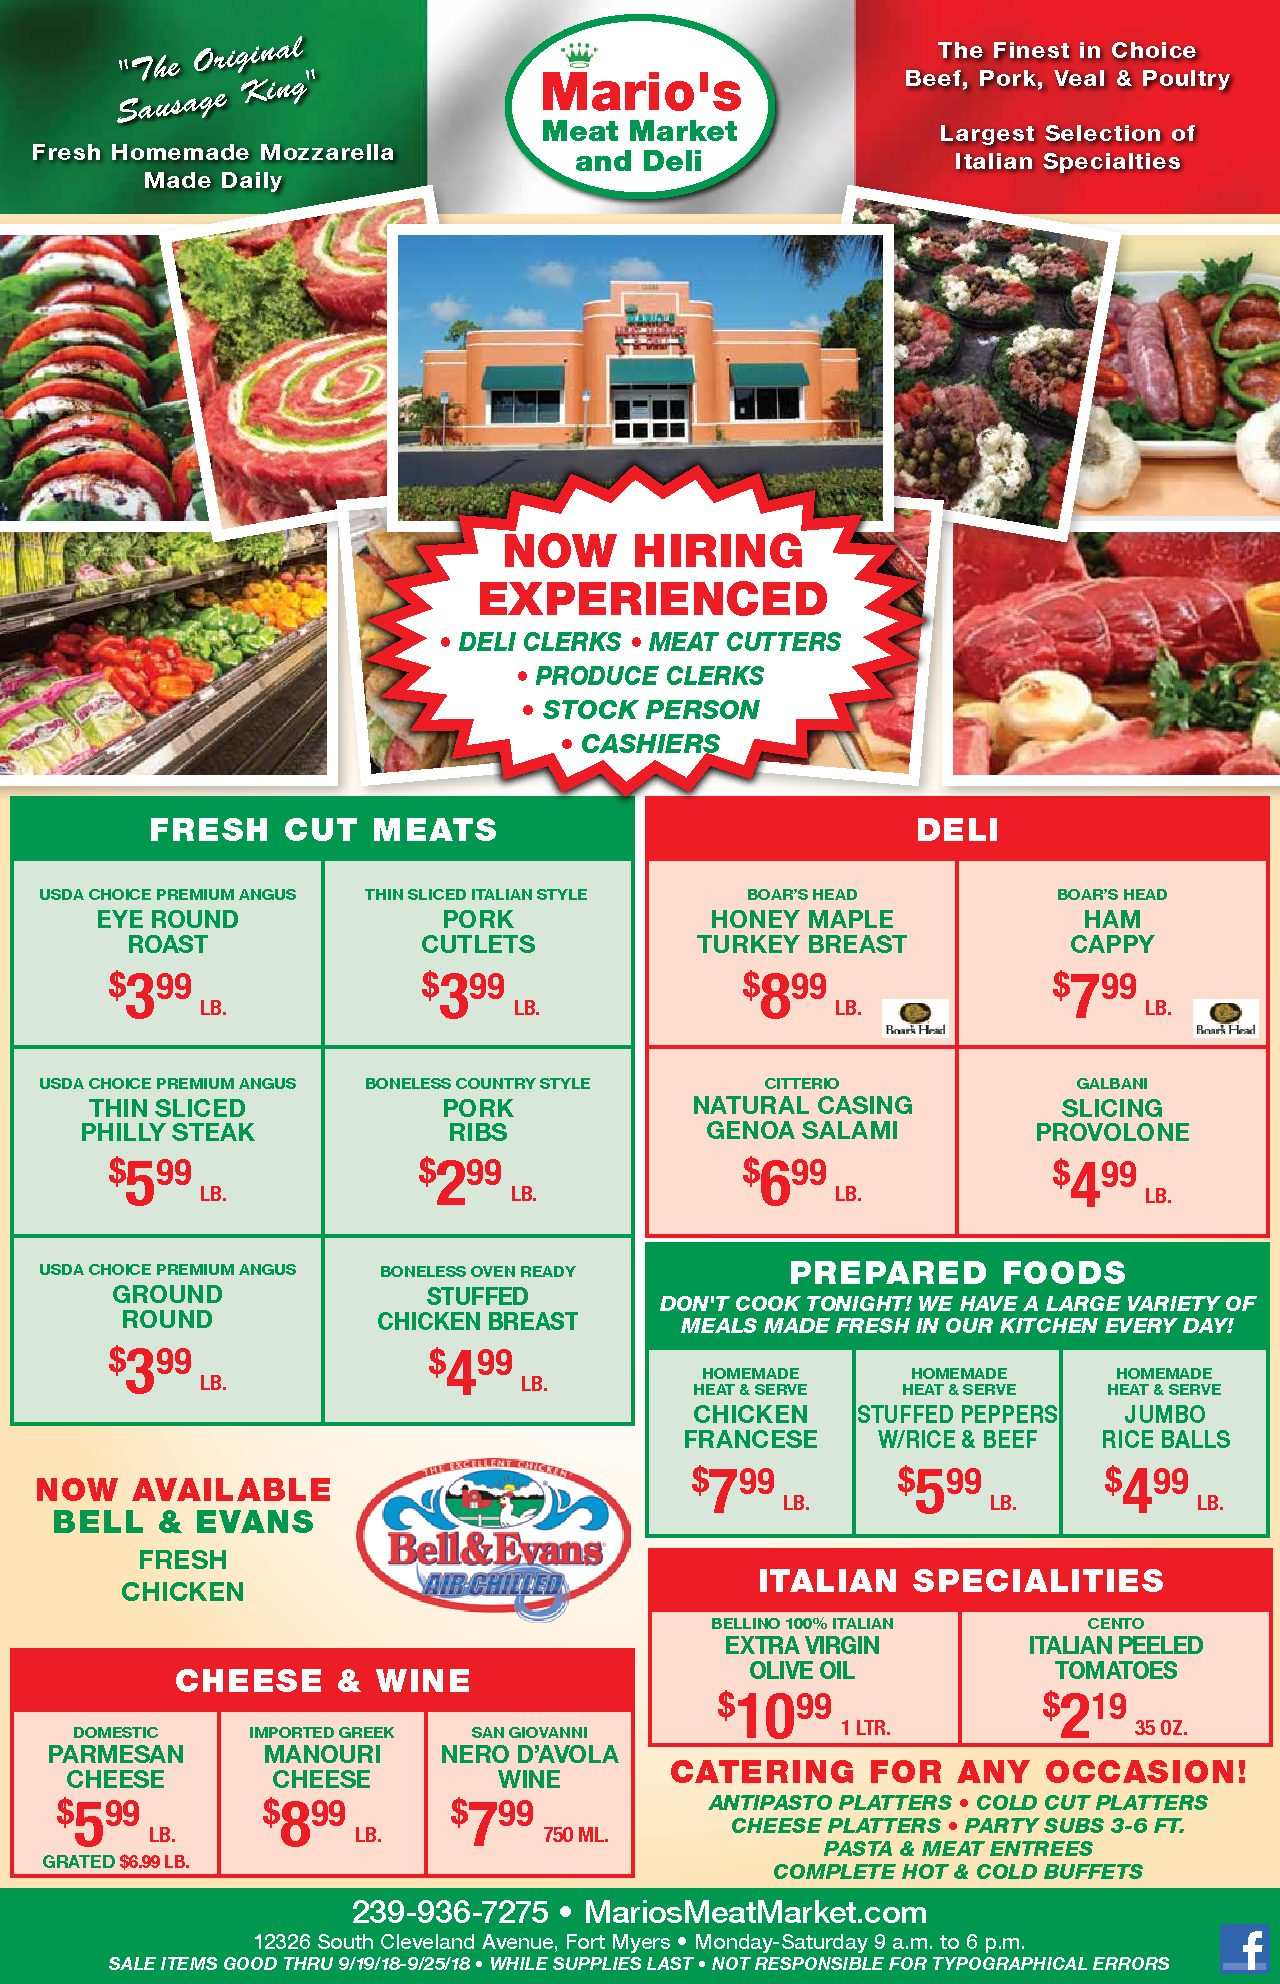 Mario's Weekly Specials - September 19th, 2018